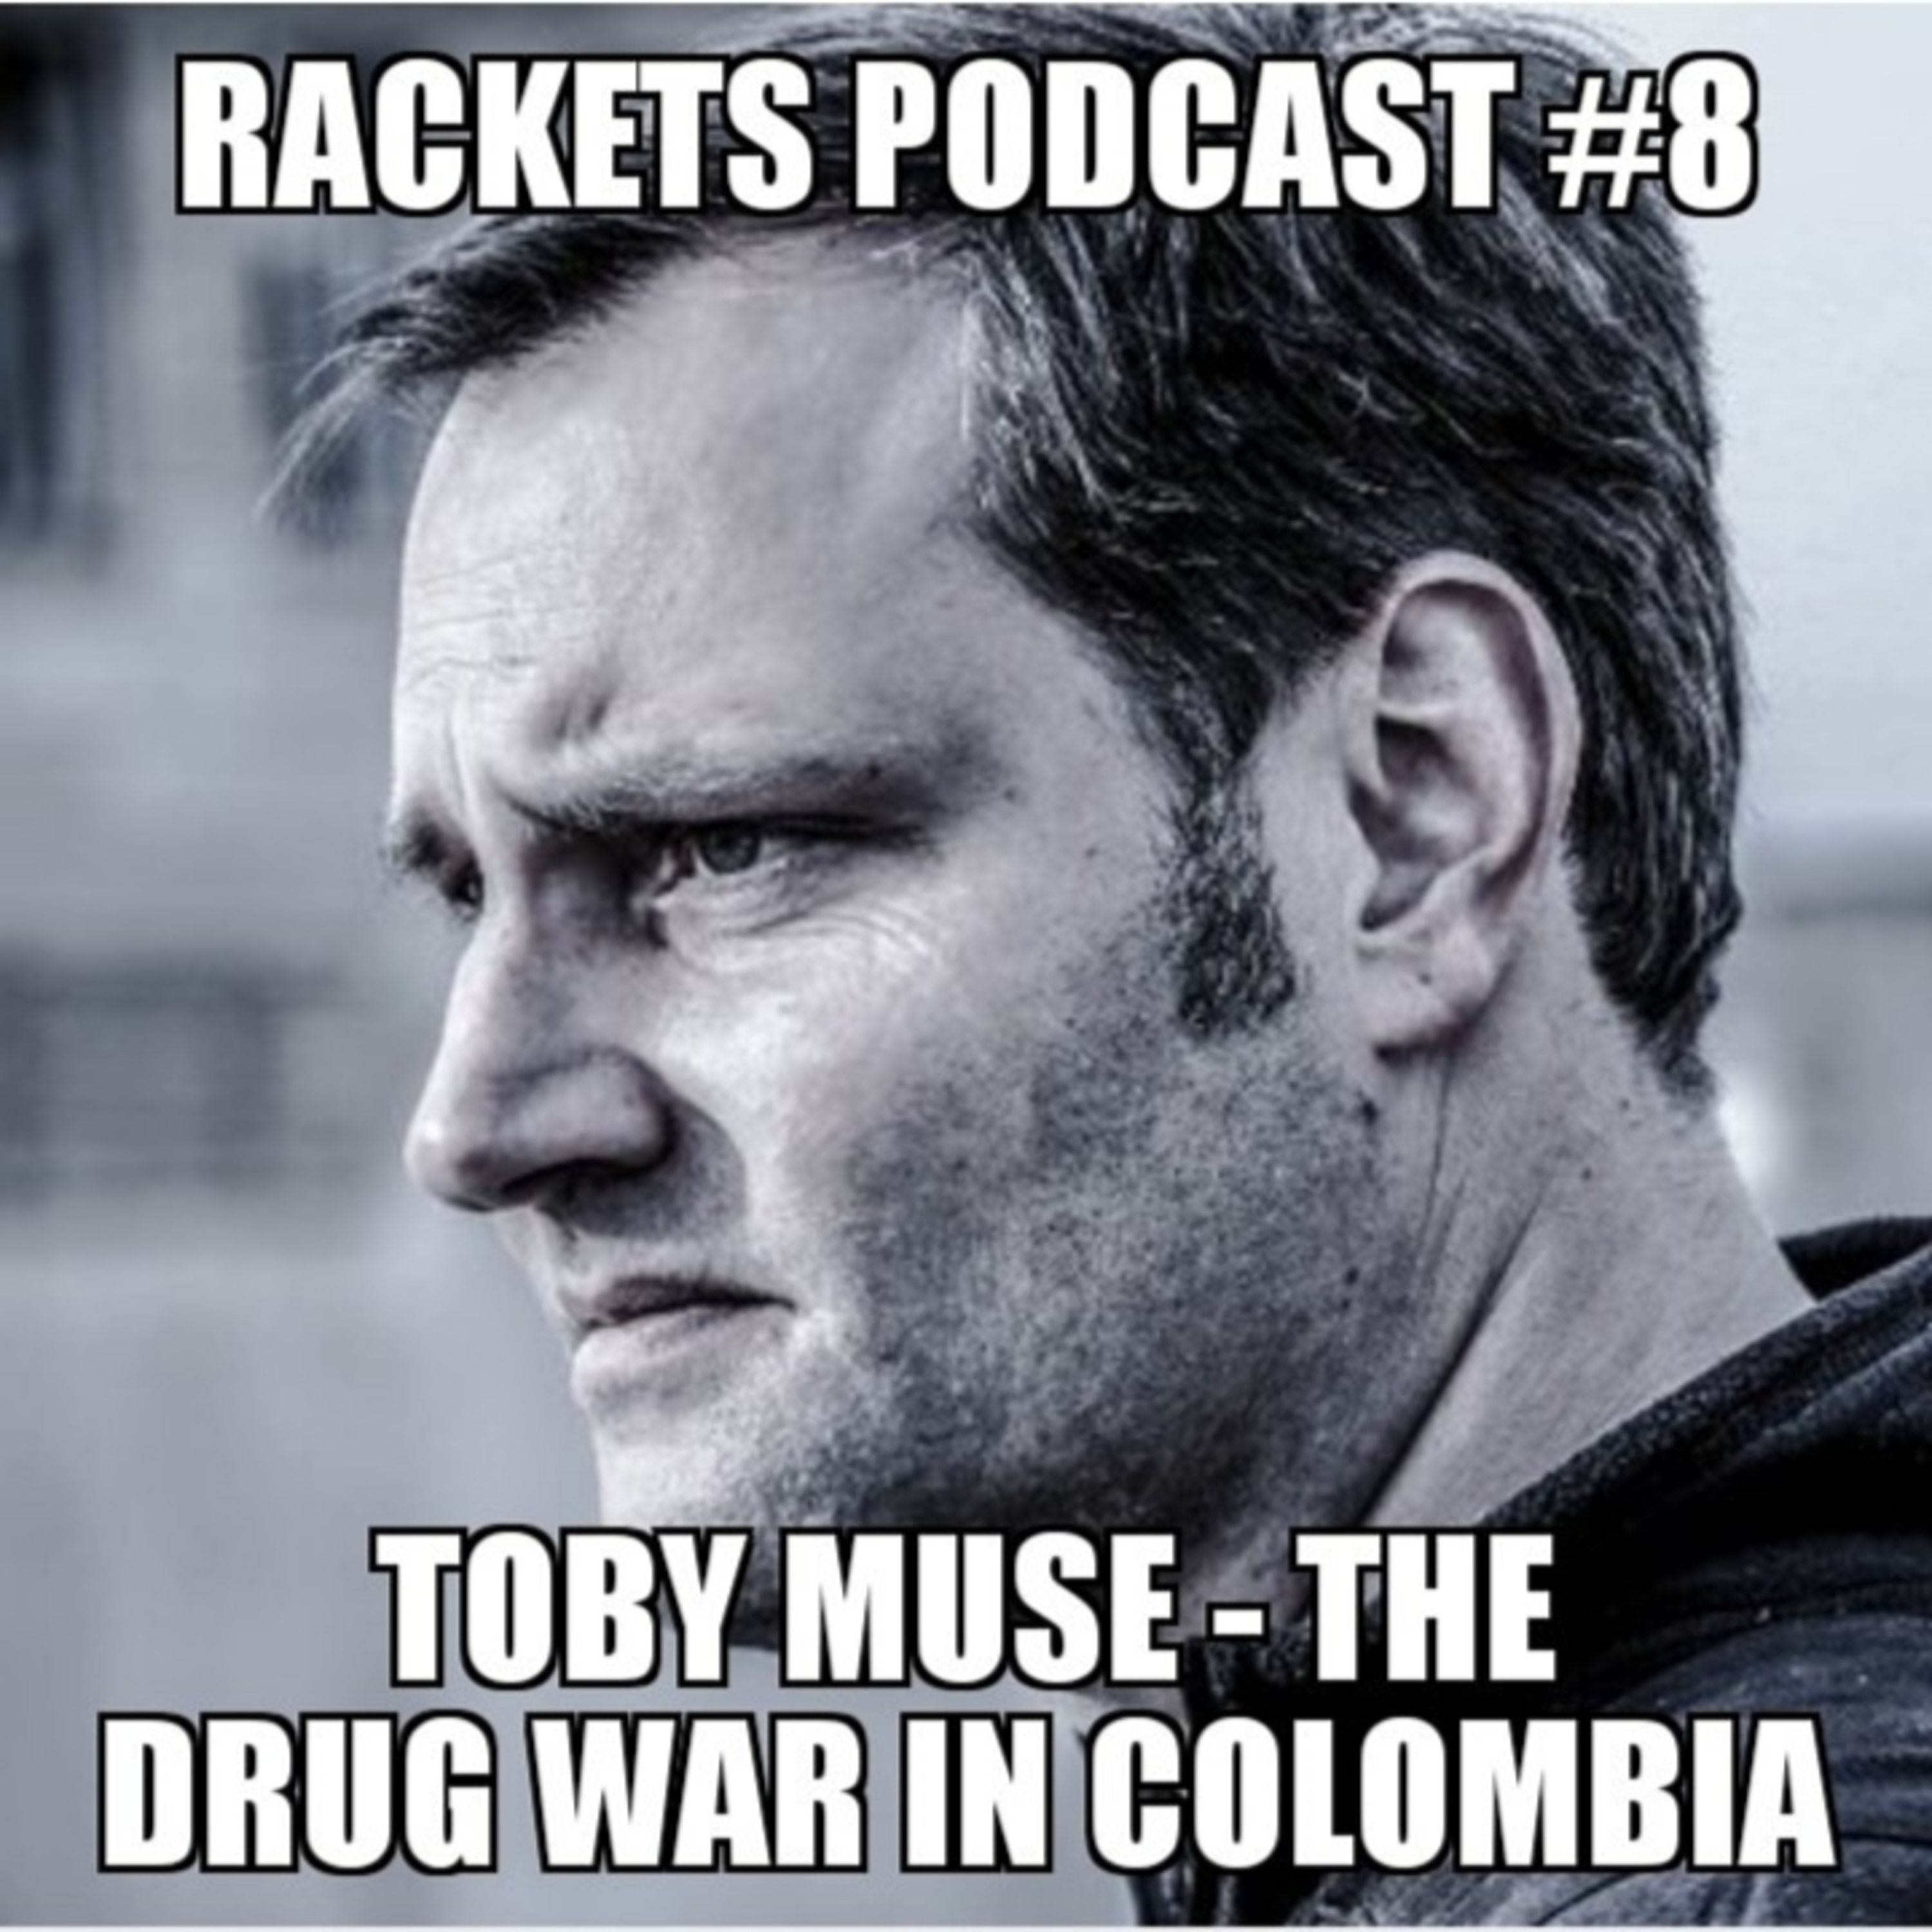 Toby Muse - The Drug War in Colombia